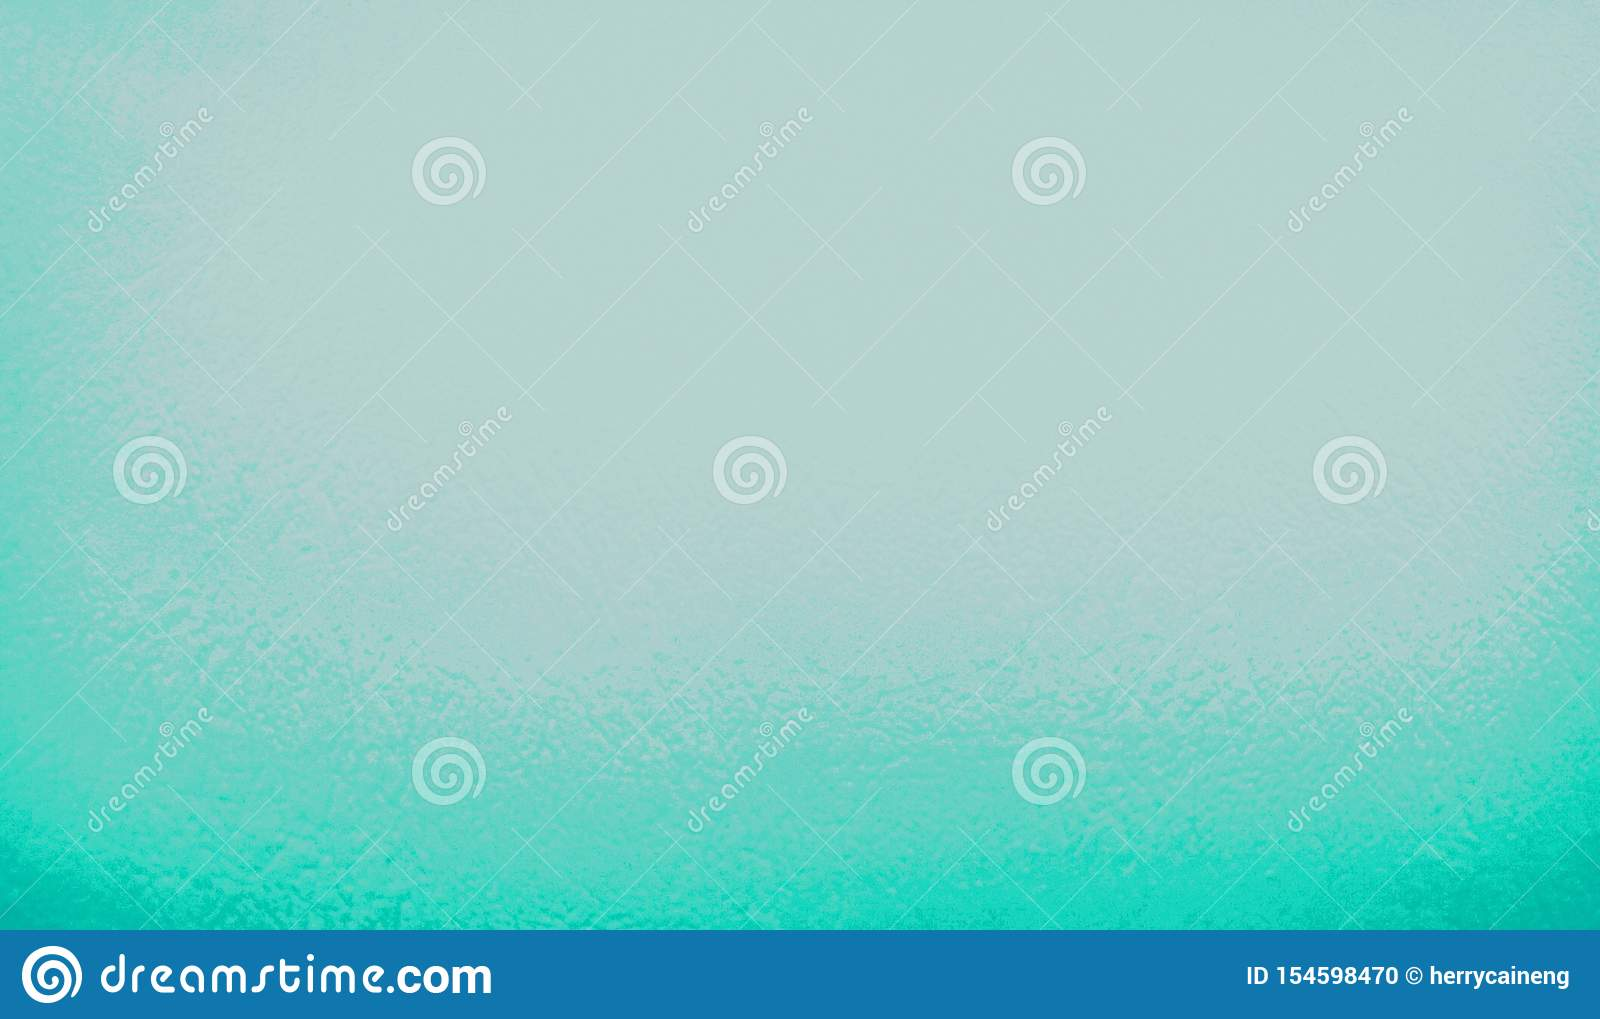 Background texture effect wall beautiful can for walpaper.Beautiful abstract decorative background.